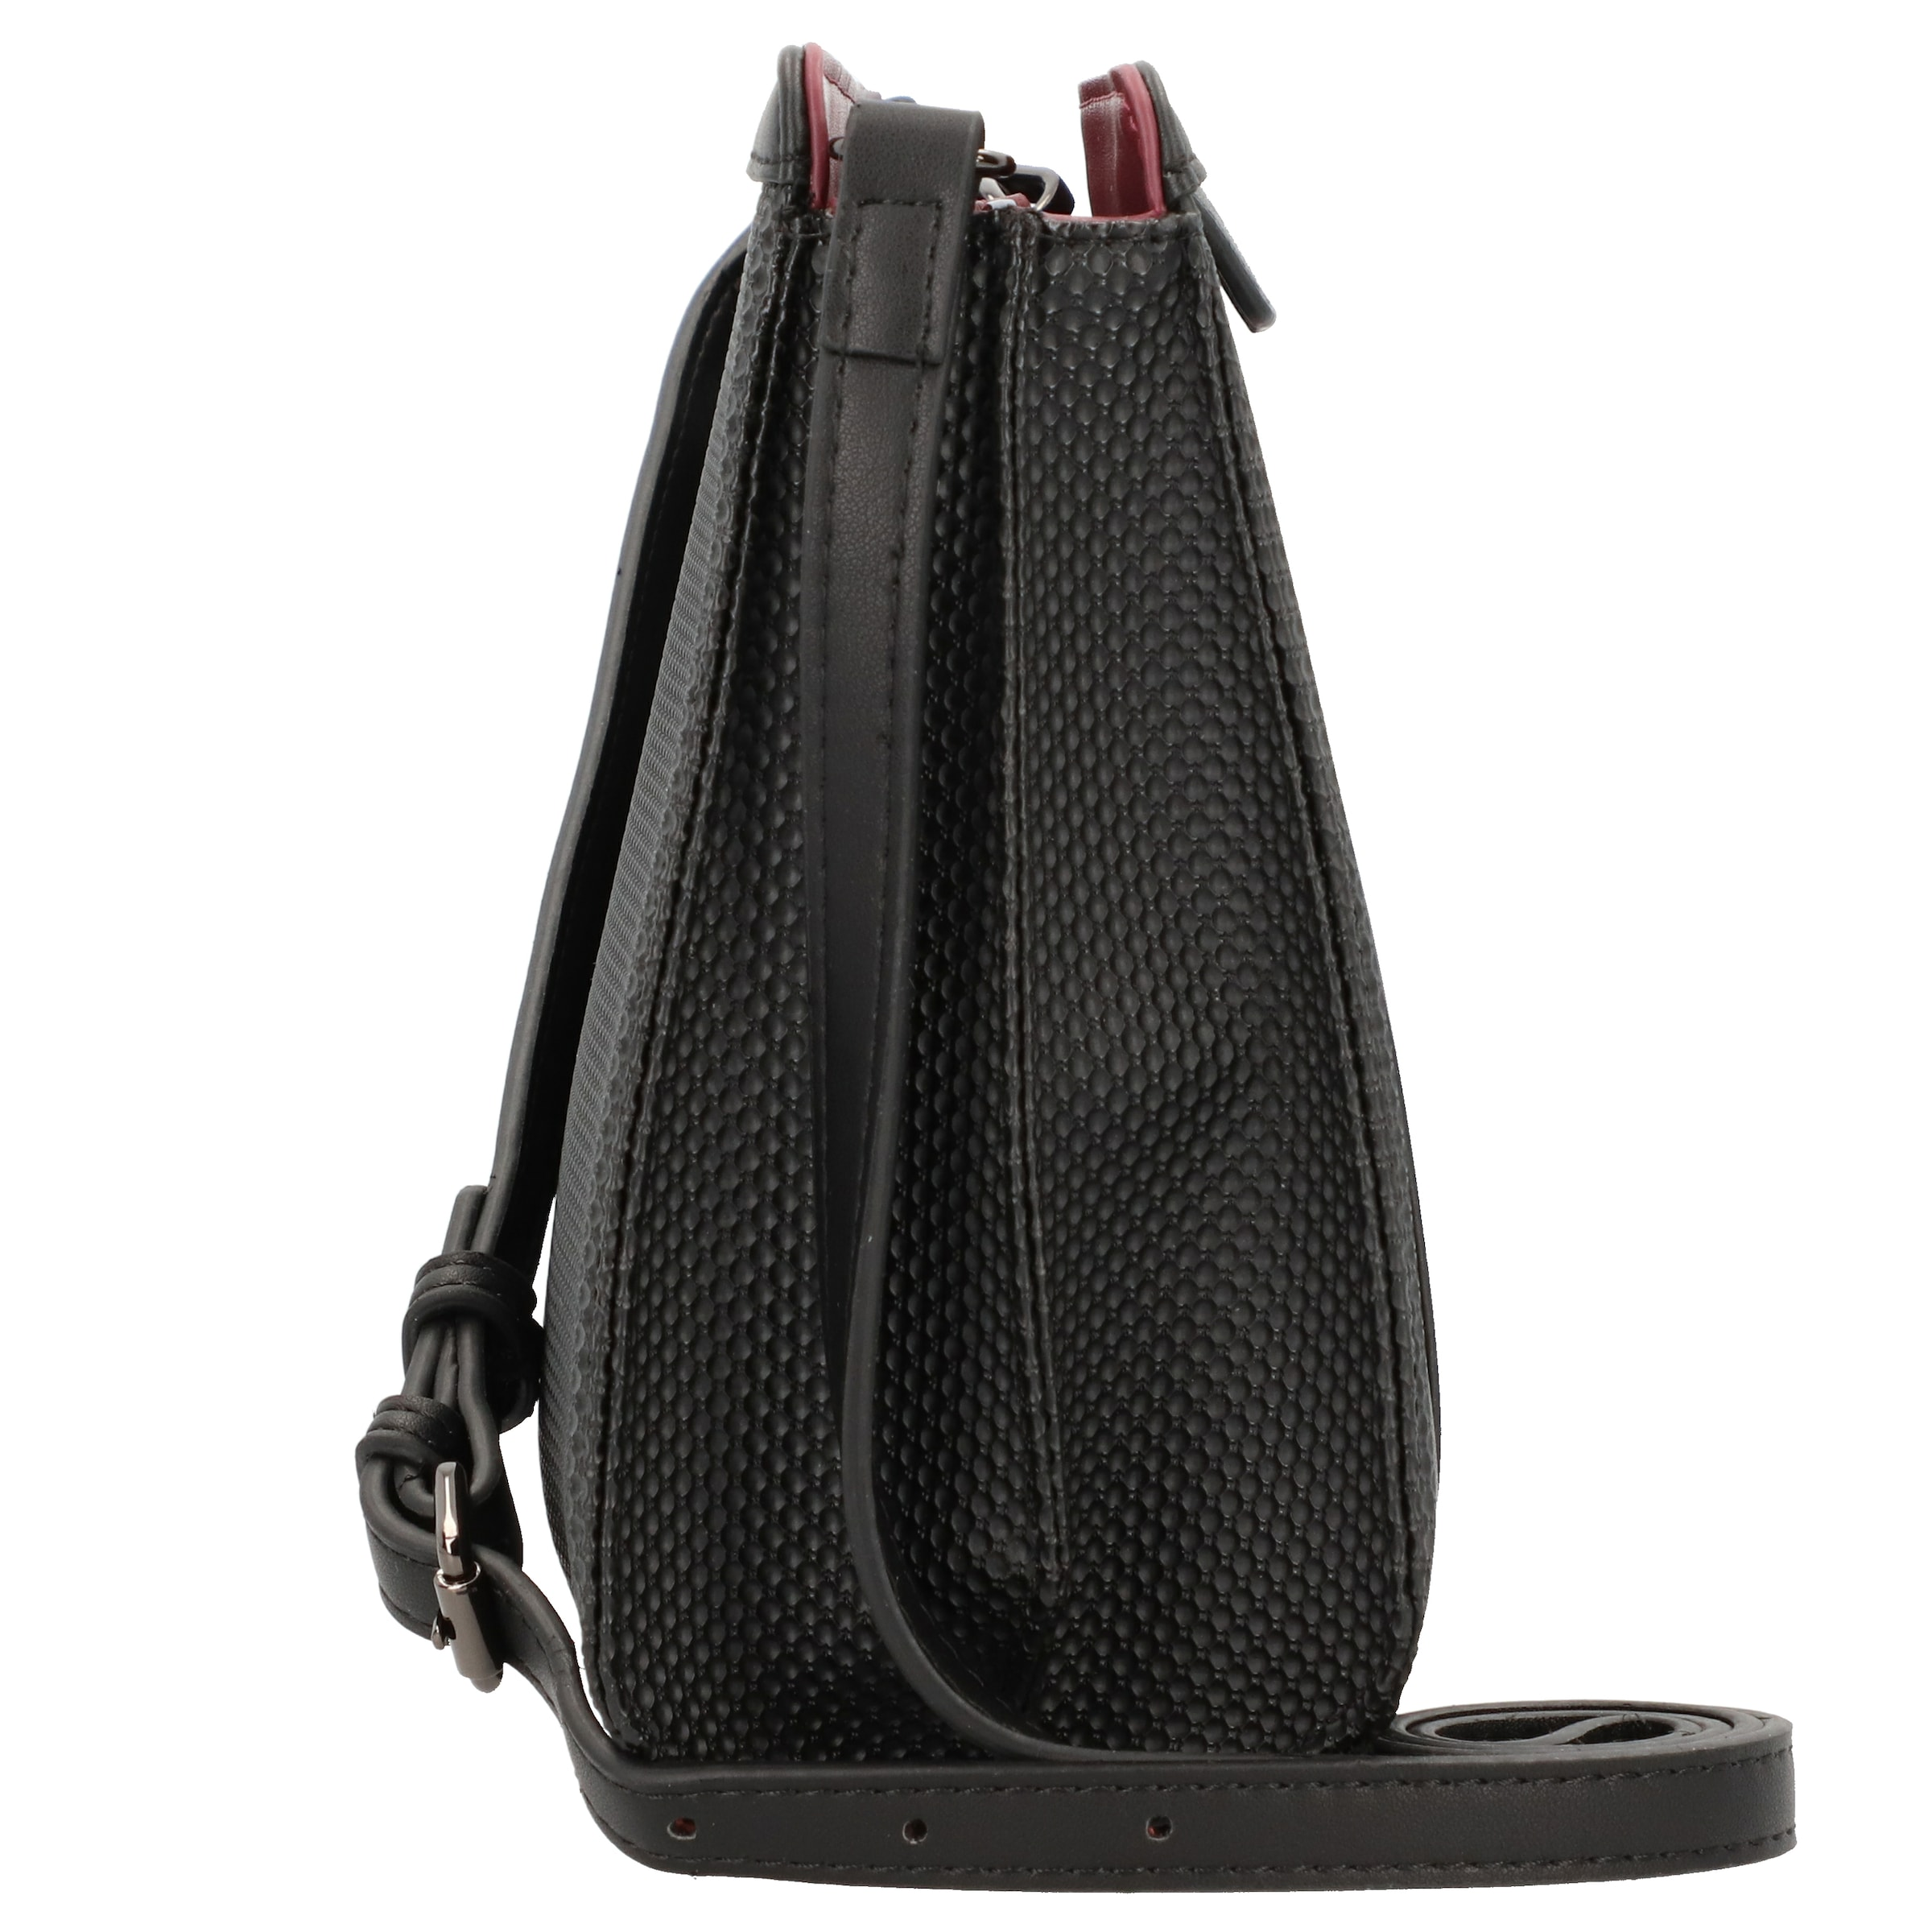 Bandoulière Julia' En Noir 'stanwell Clair RoseRouge London À Pauls Sac Boutique CxQdtsrh